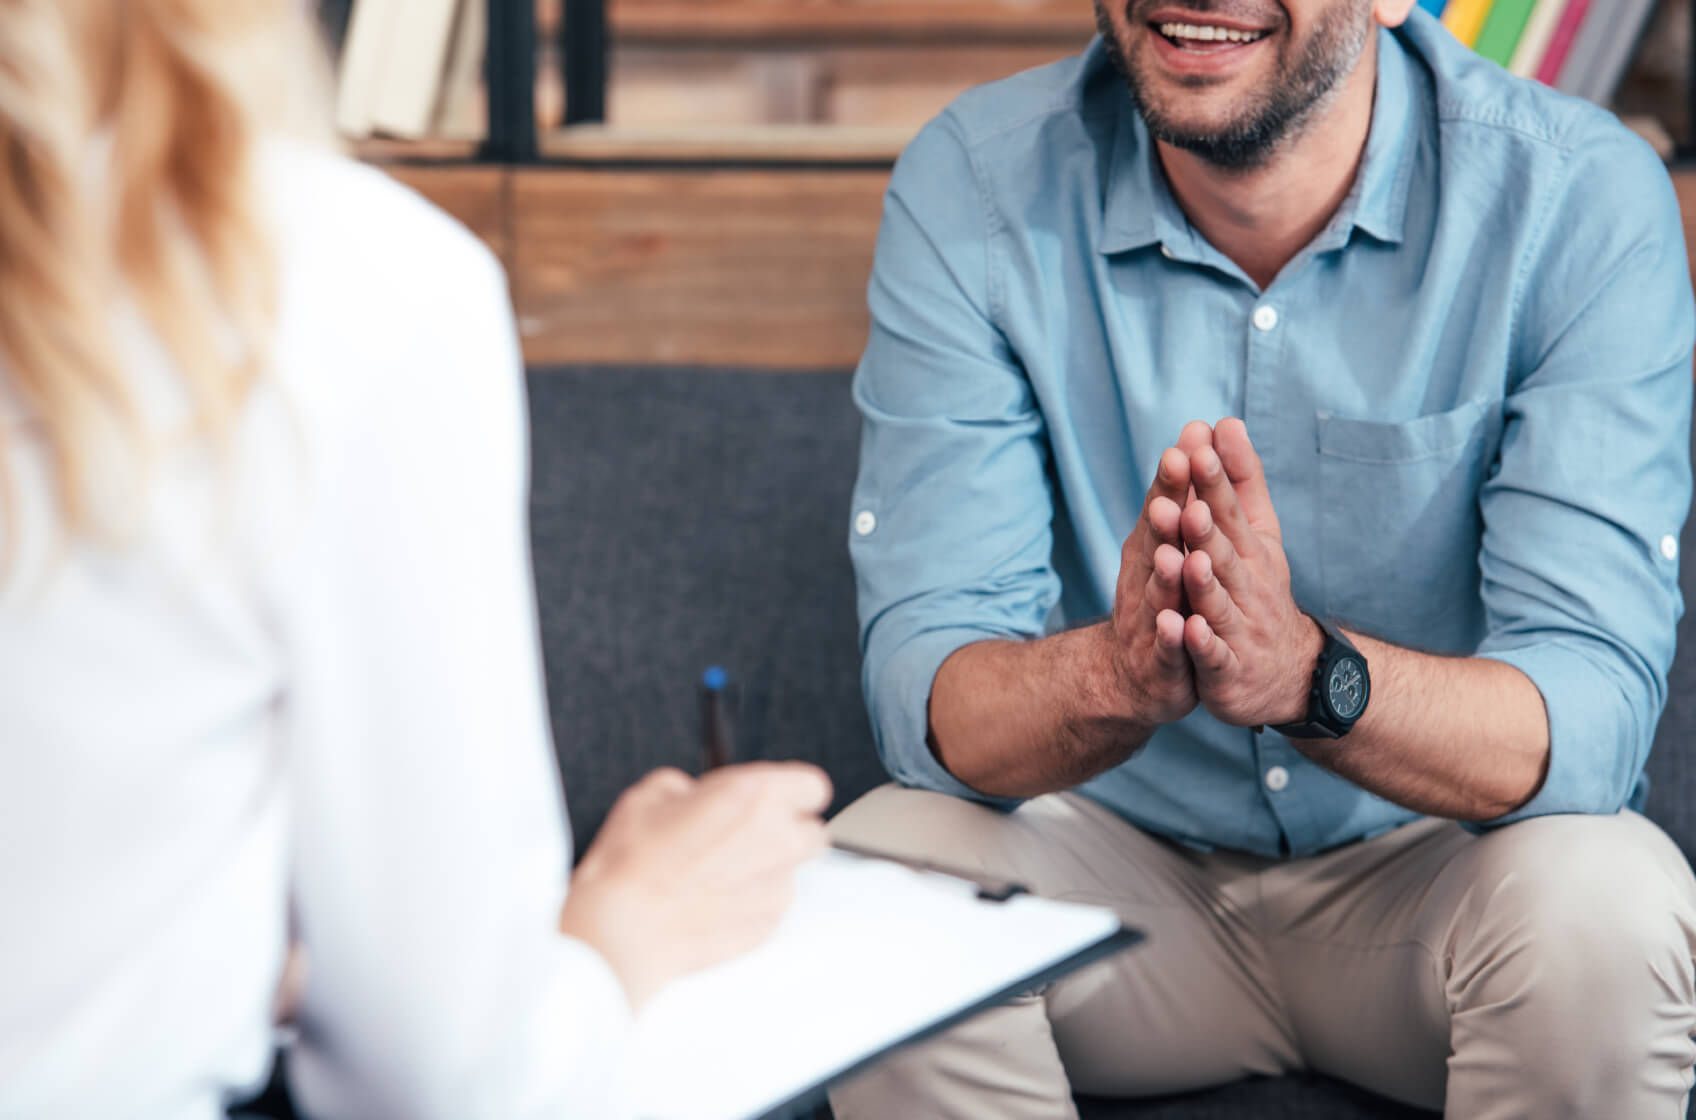 It's official: financial advice is good for your emotional wellbeing